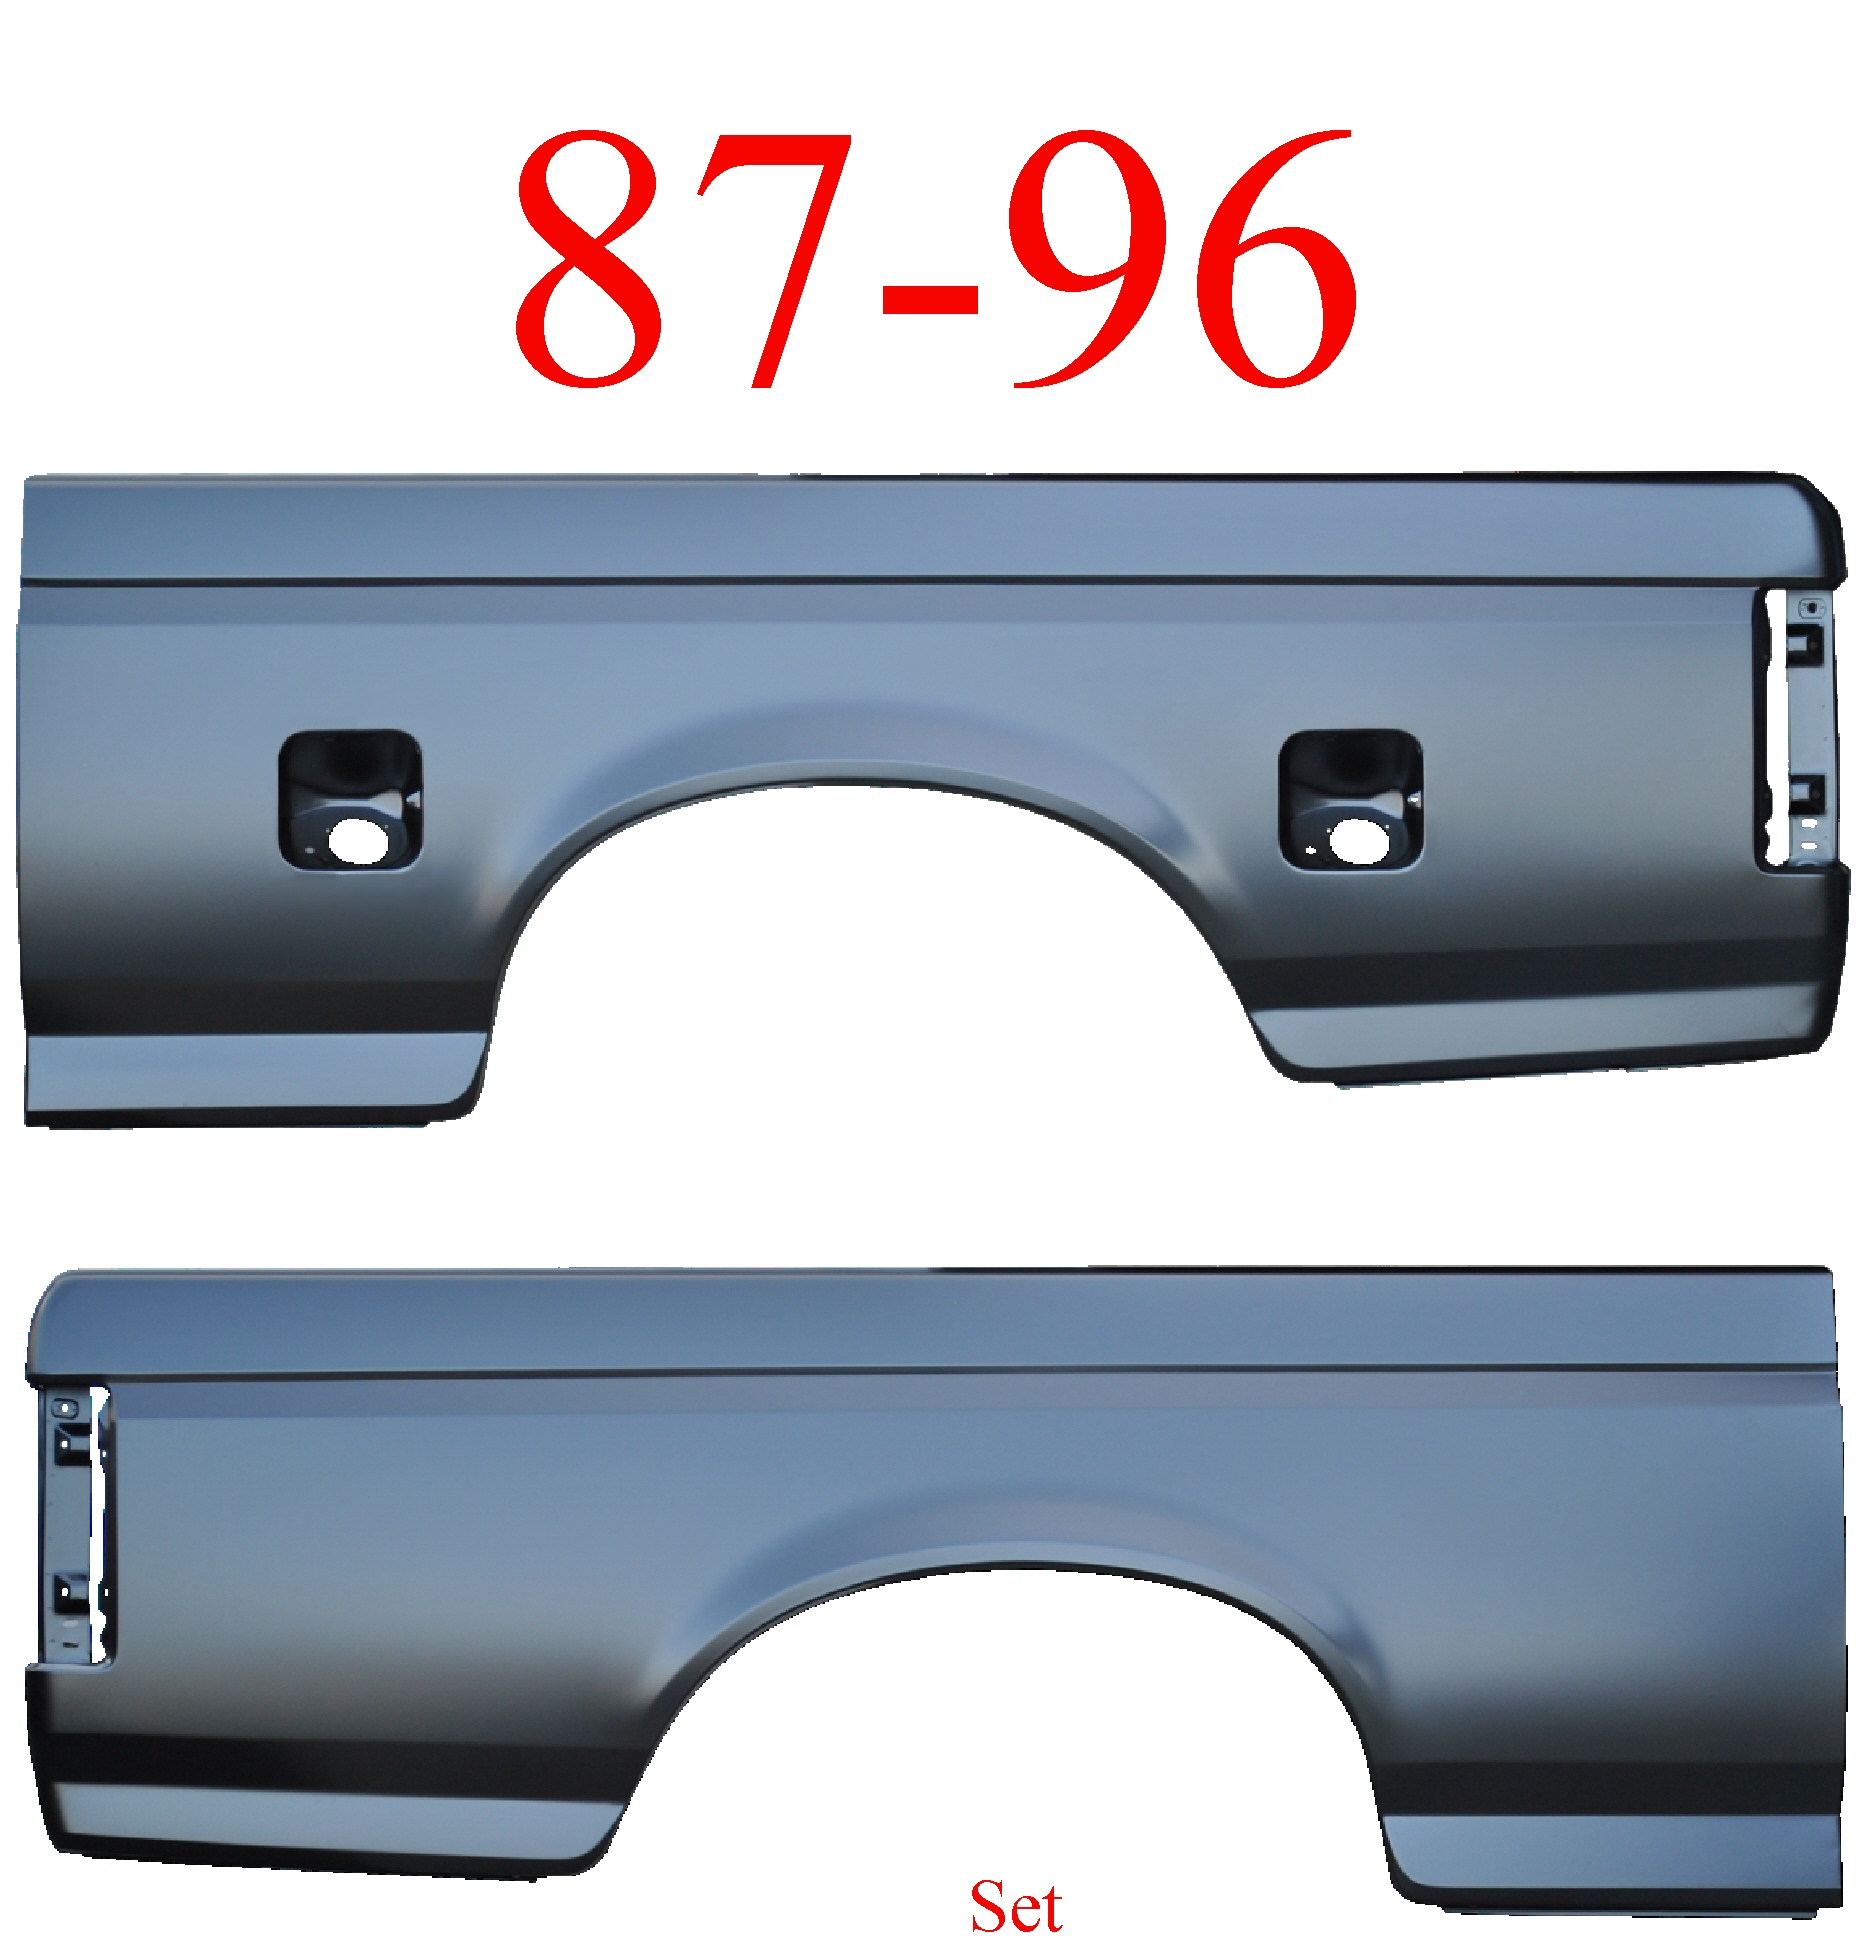 87 96 Ford 6.5' Bed Side Set Dual Fuel Hole